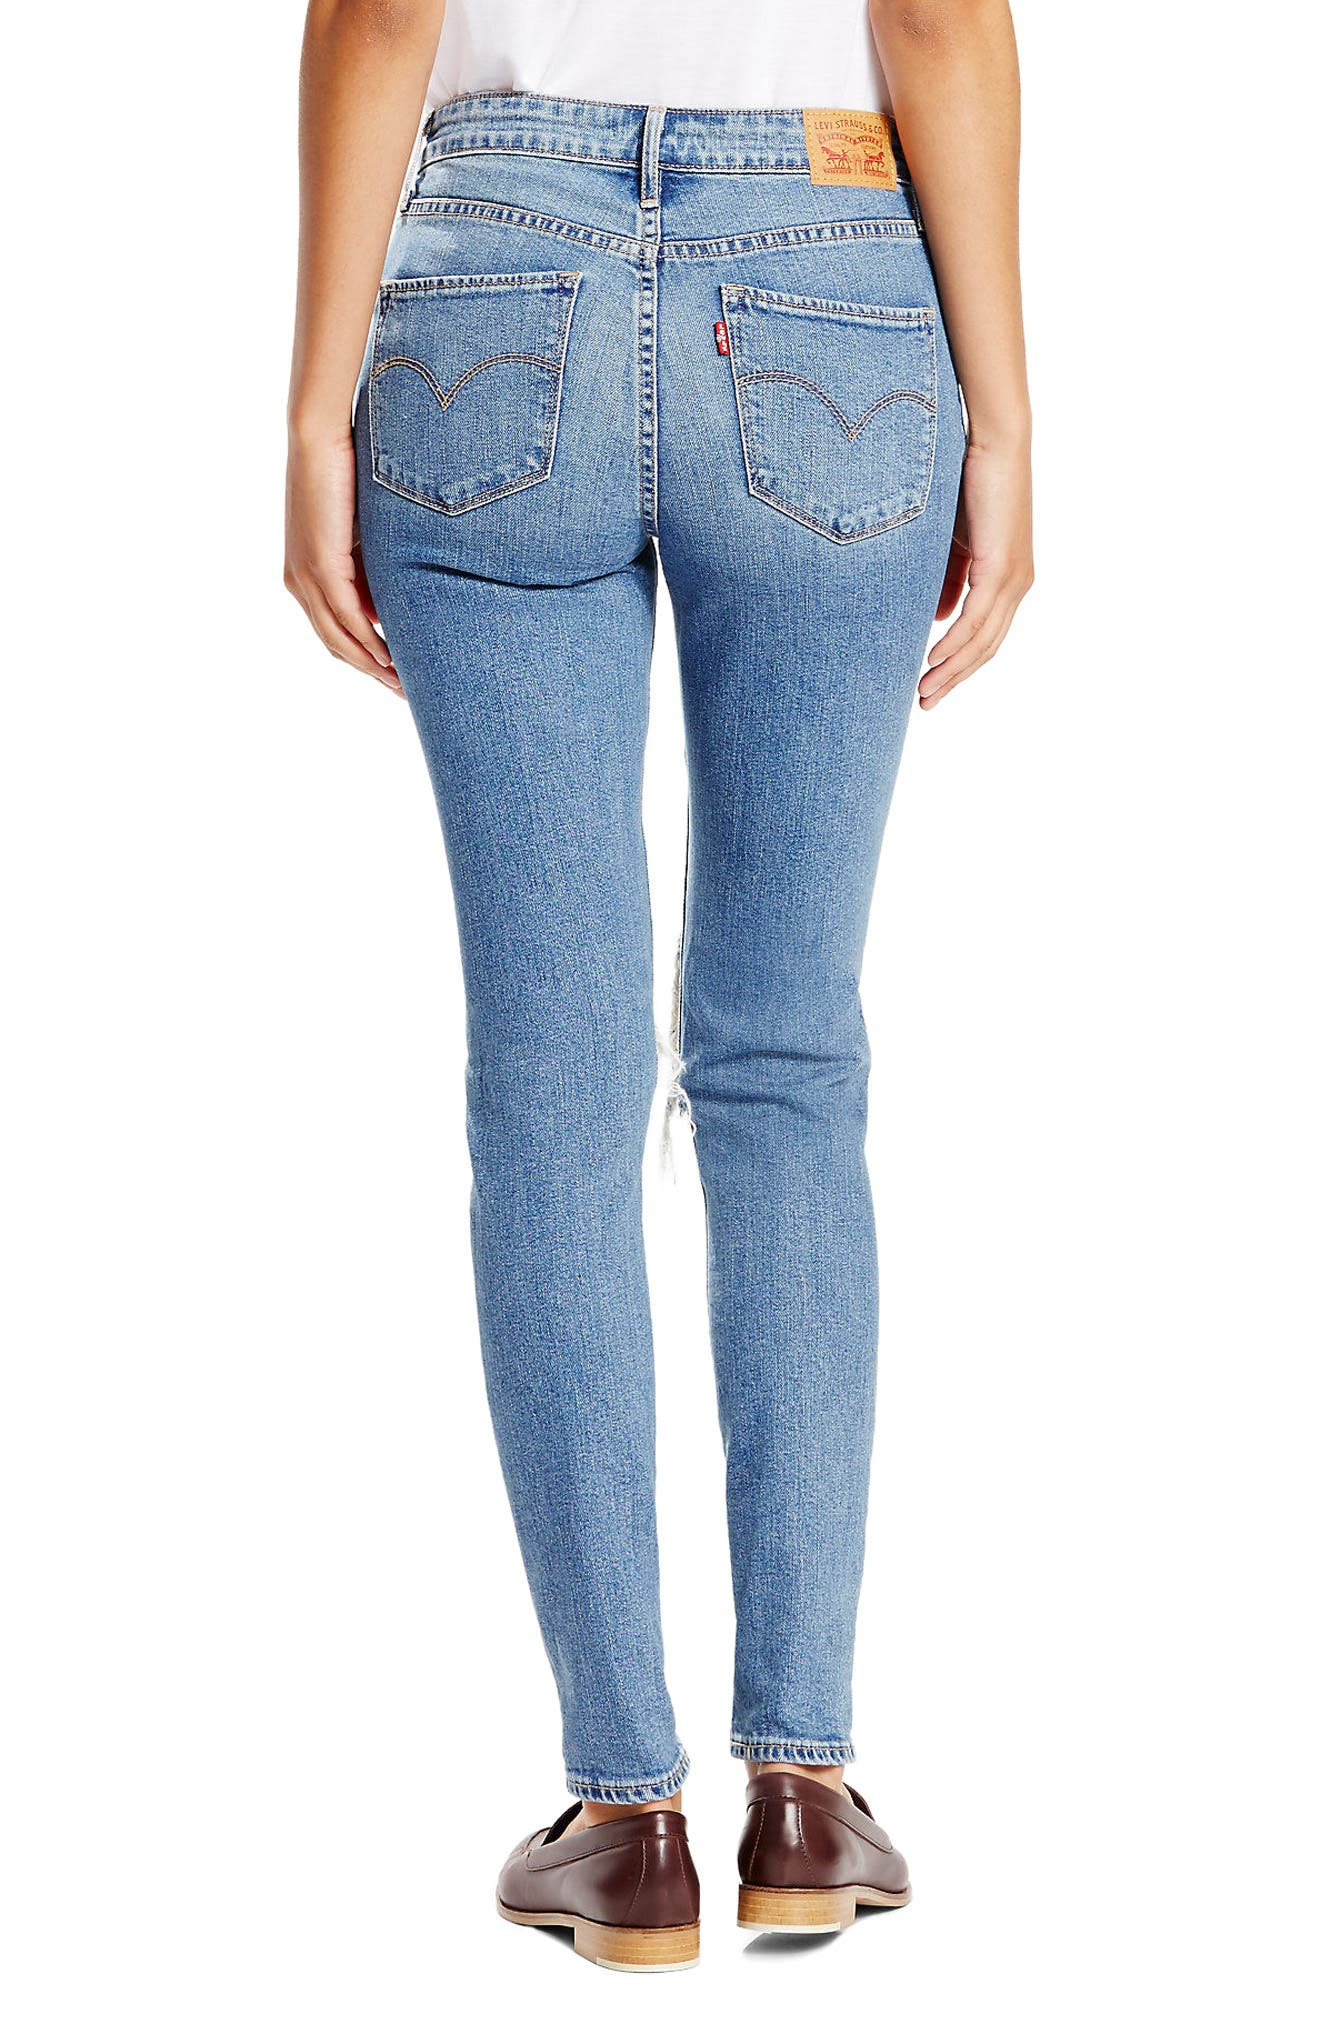 721 Ripped High Waist Skinny Jeans,                             Alternate thumbnail 2, color,                             Rugged Indigo